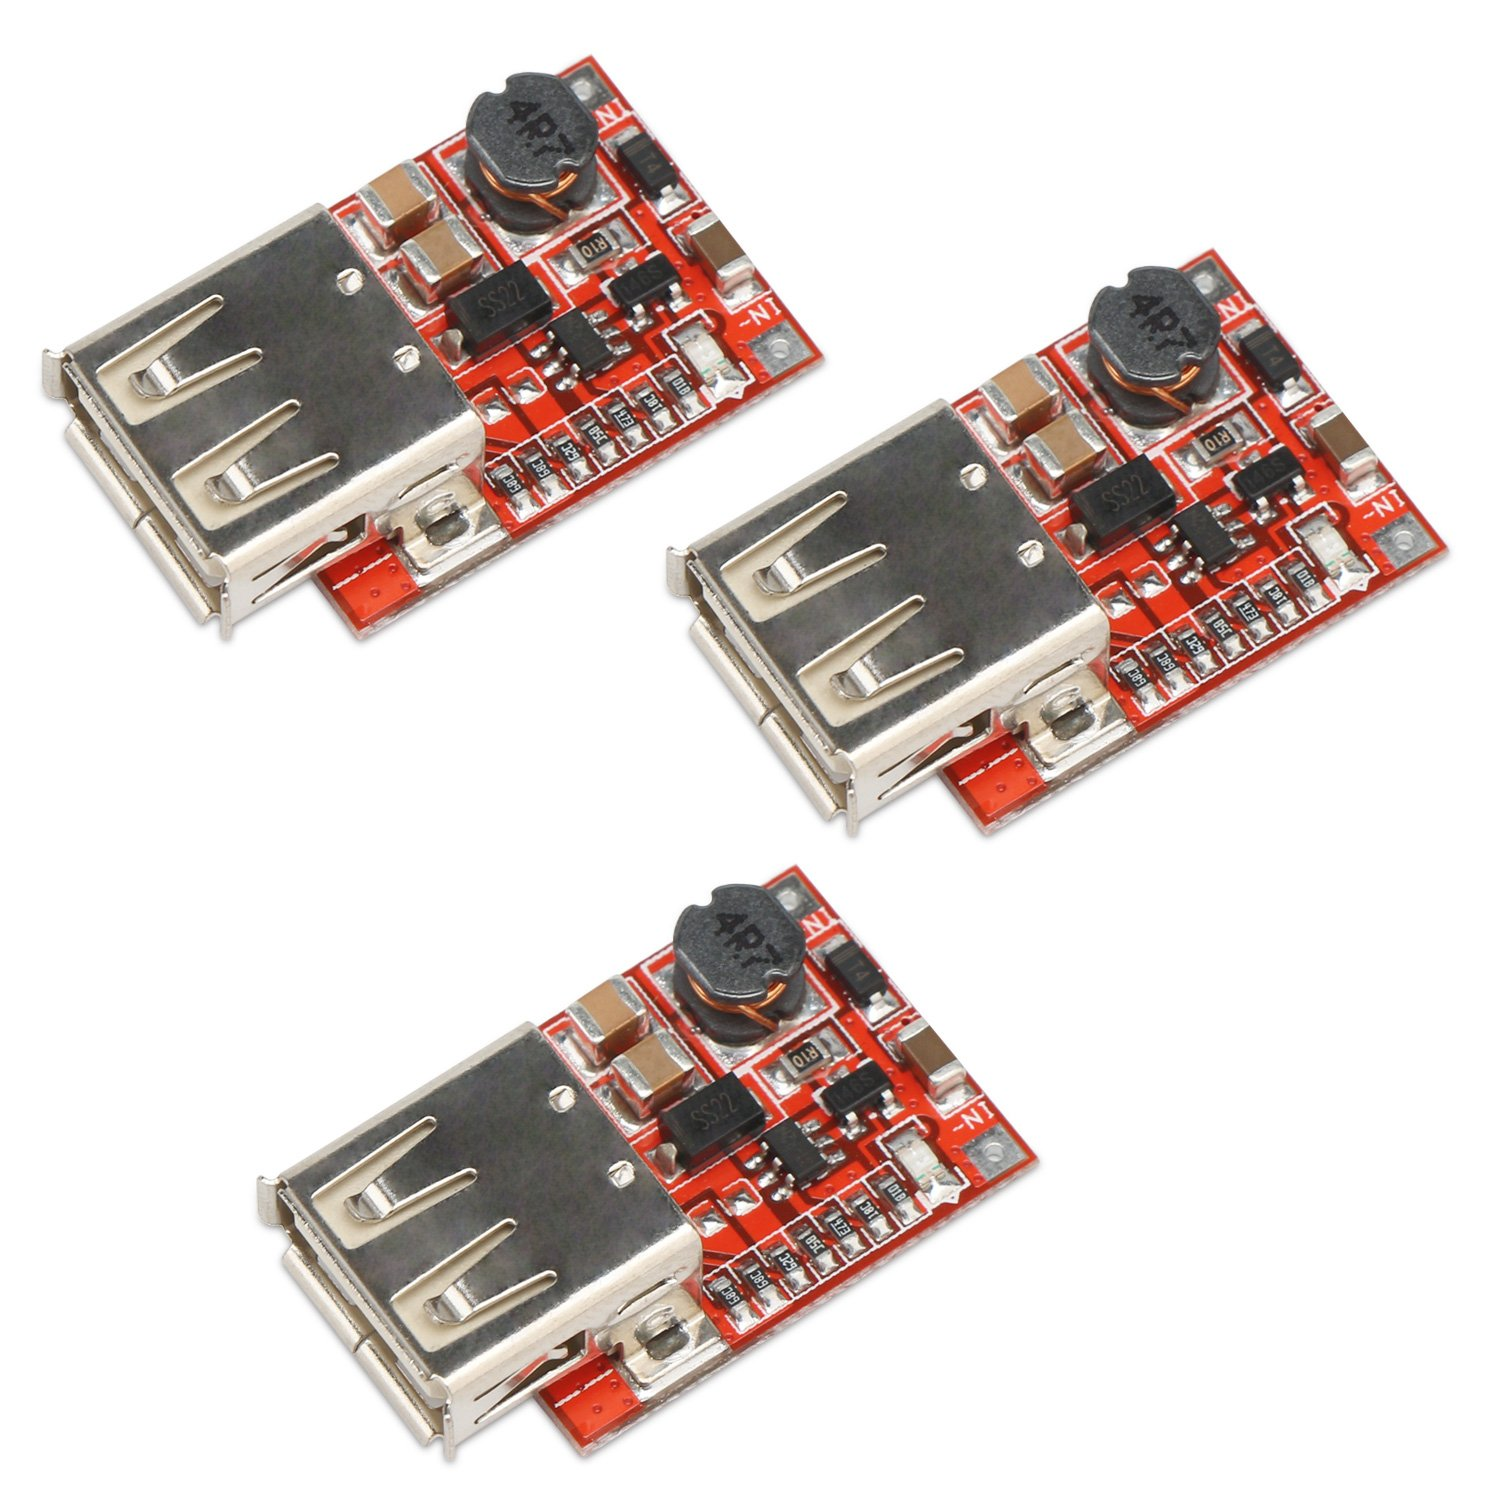 Boost Converter Module, DROK 3pcs USB DC-DC Step up 3V to 5V 1A Convert Voltage Regulator Board for MP3 MP4 Phone Charging by DROK